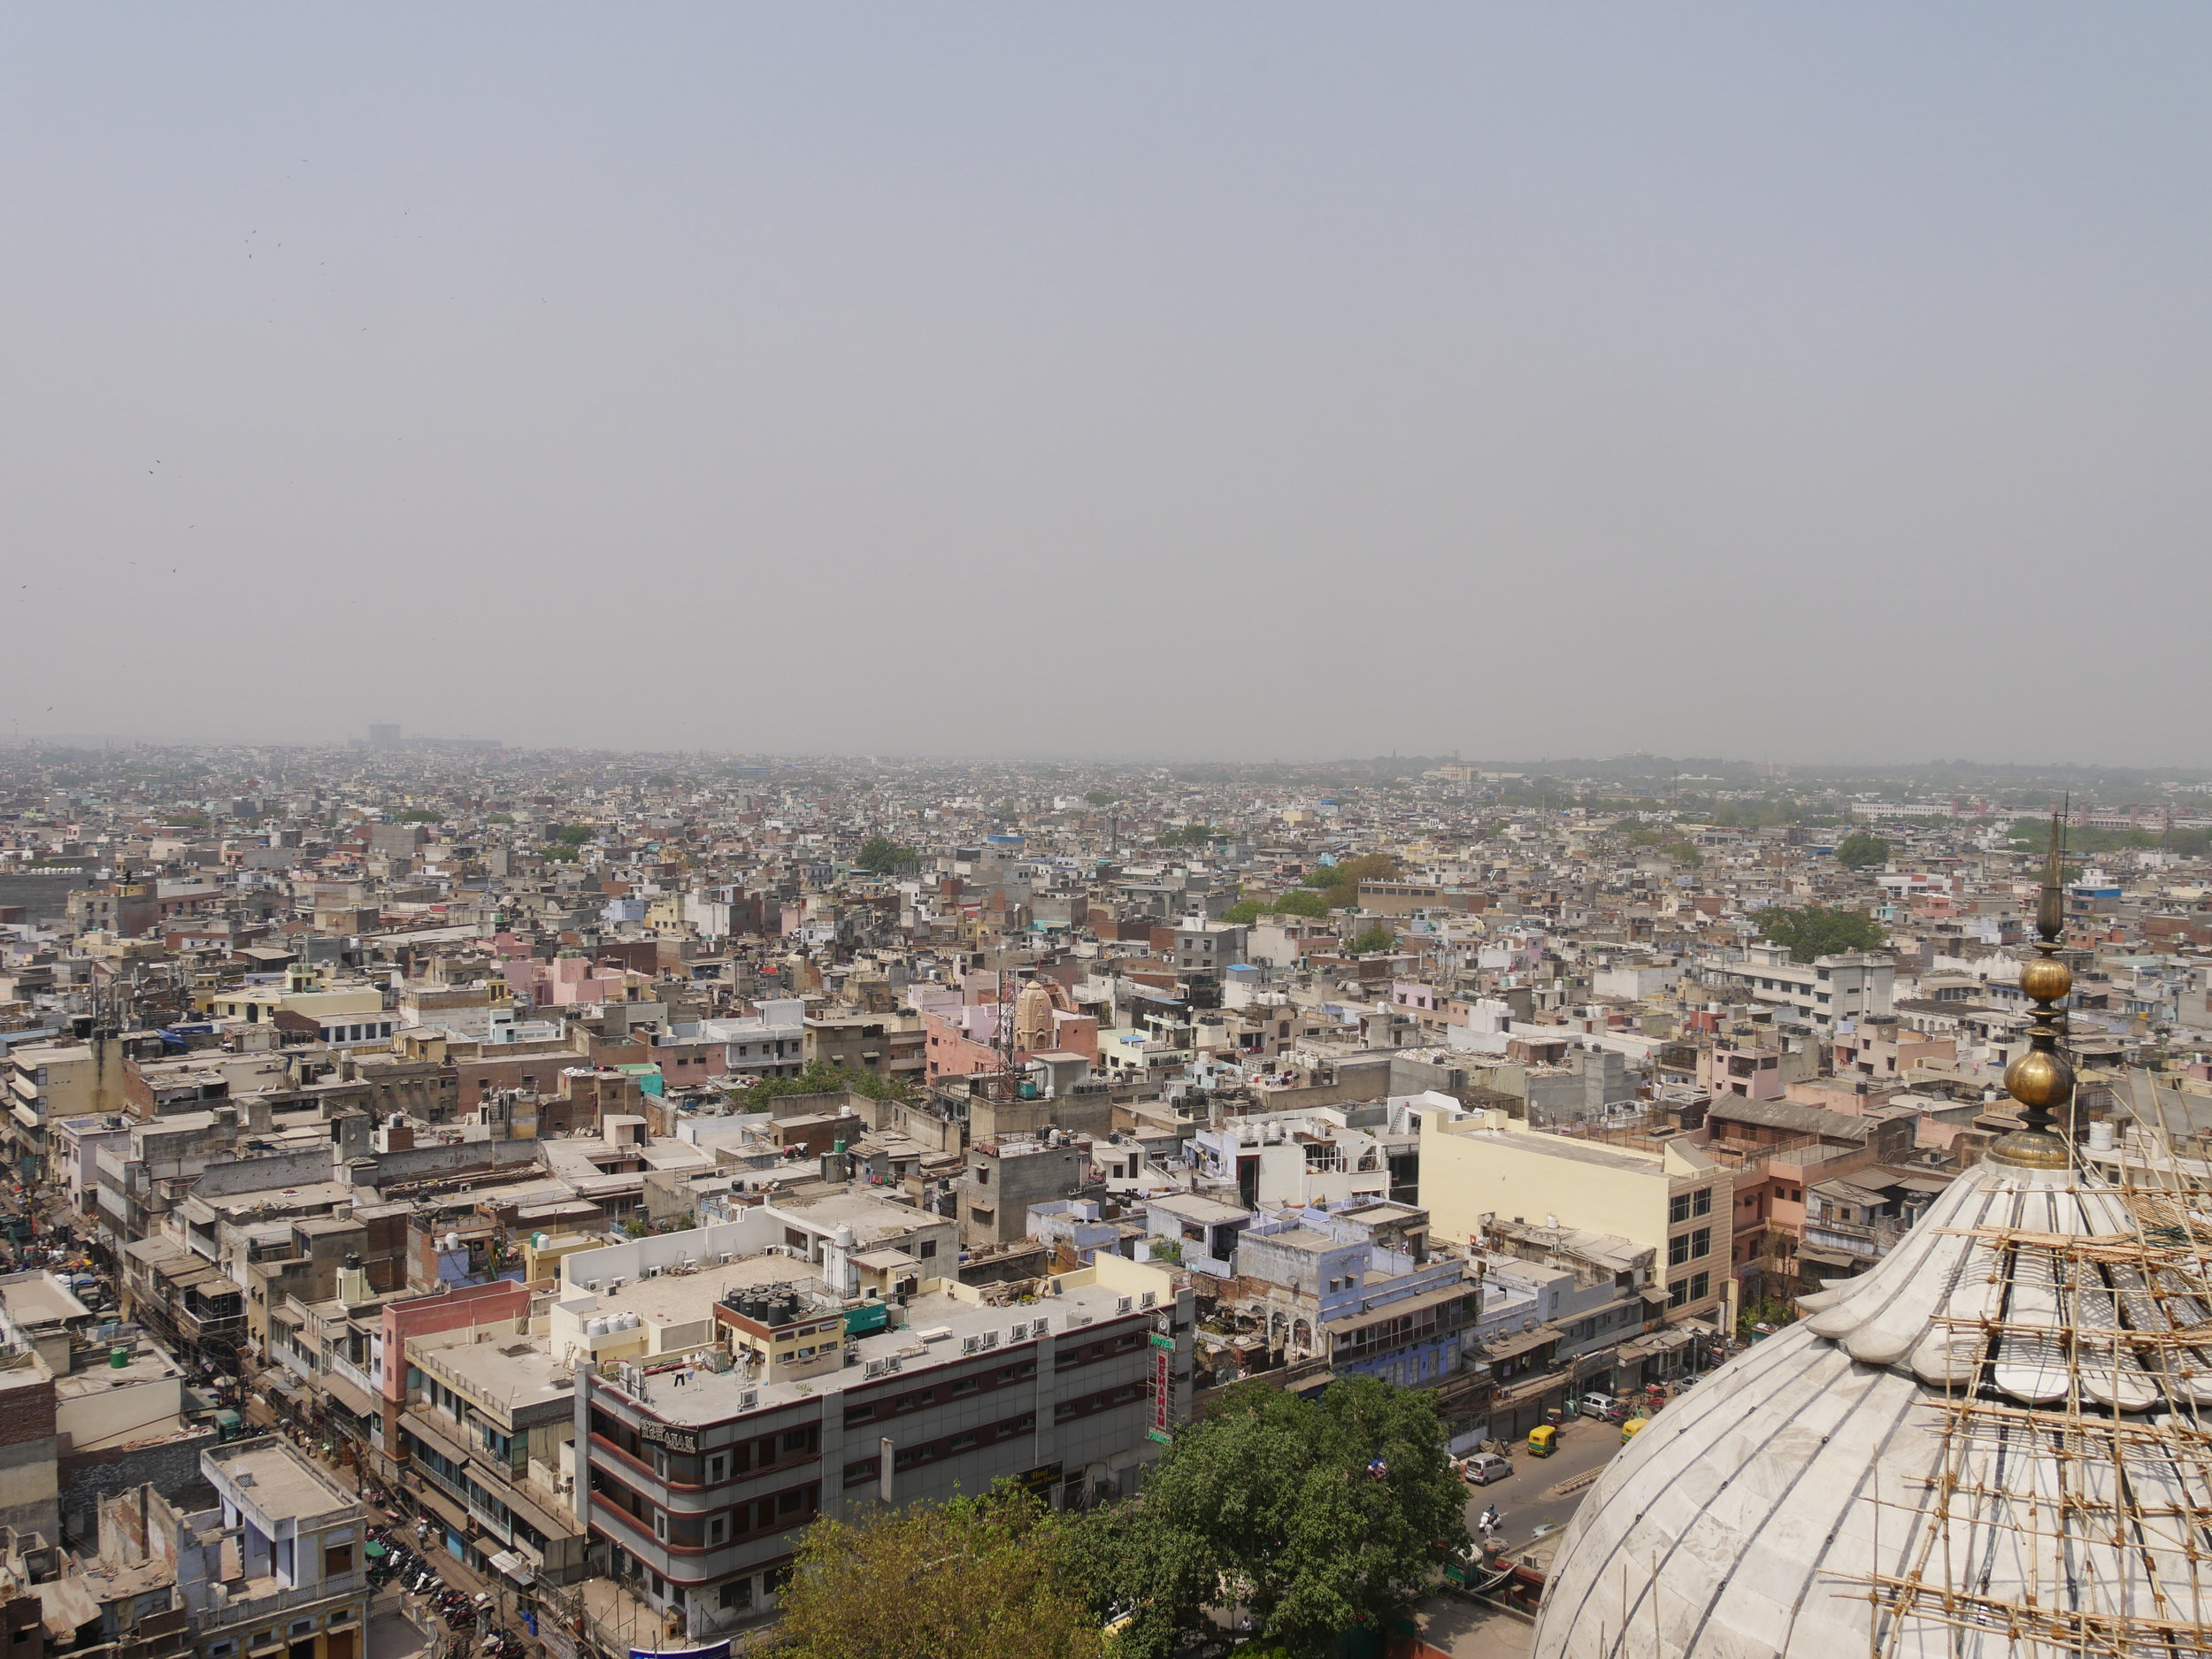 Views from the minaret